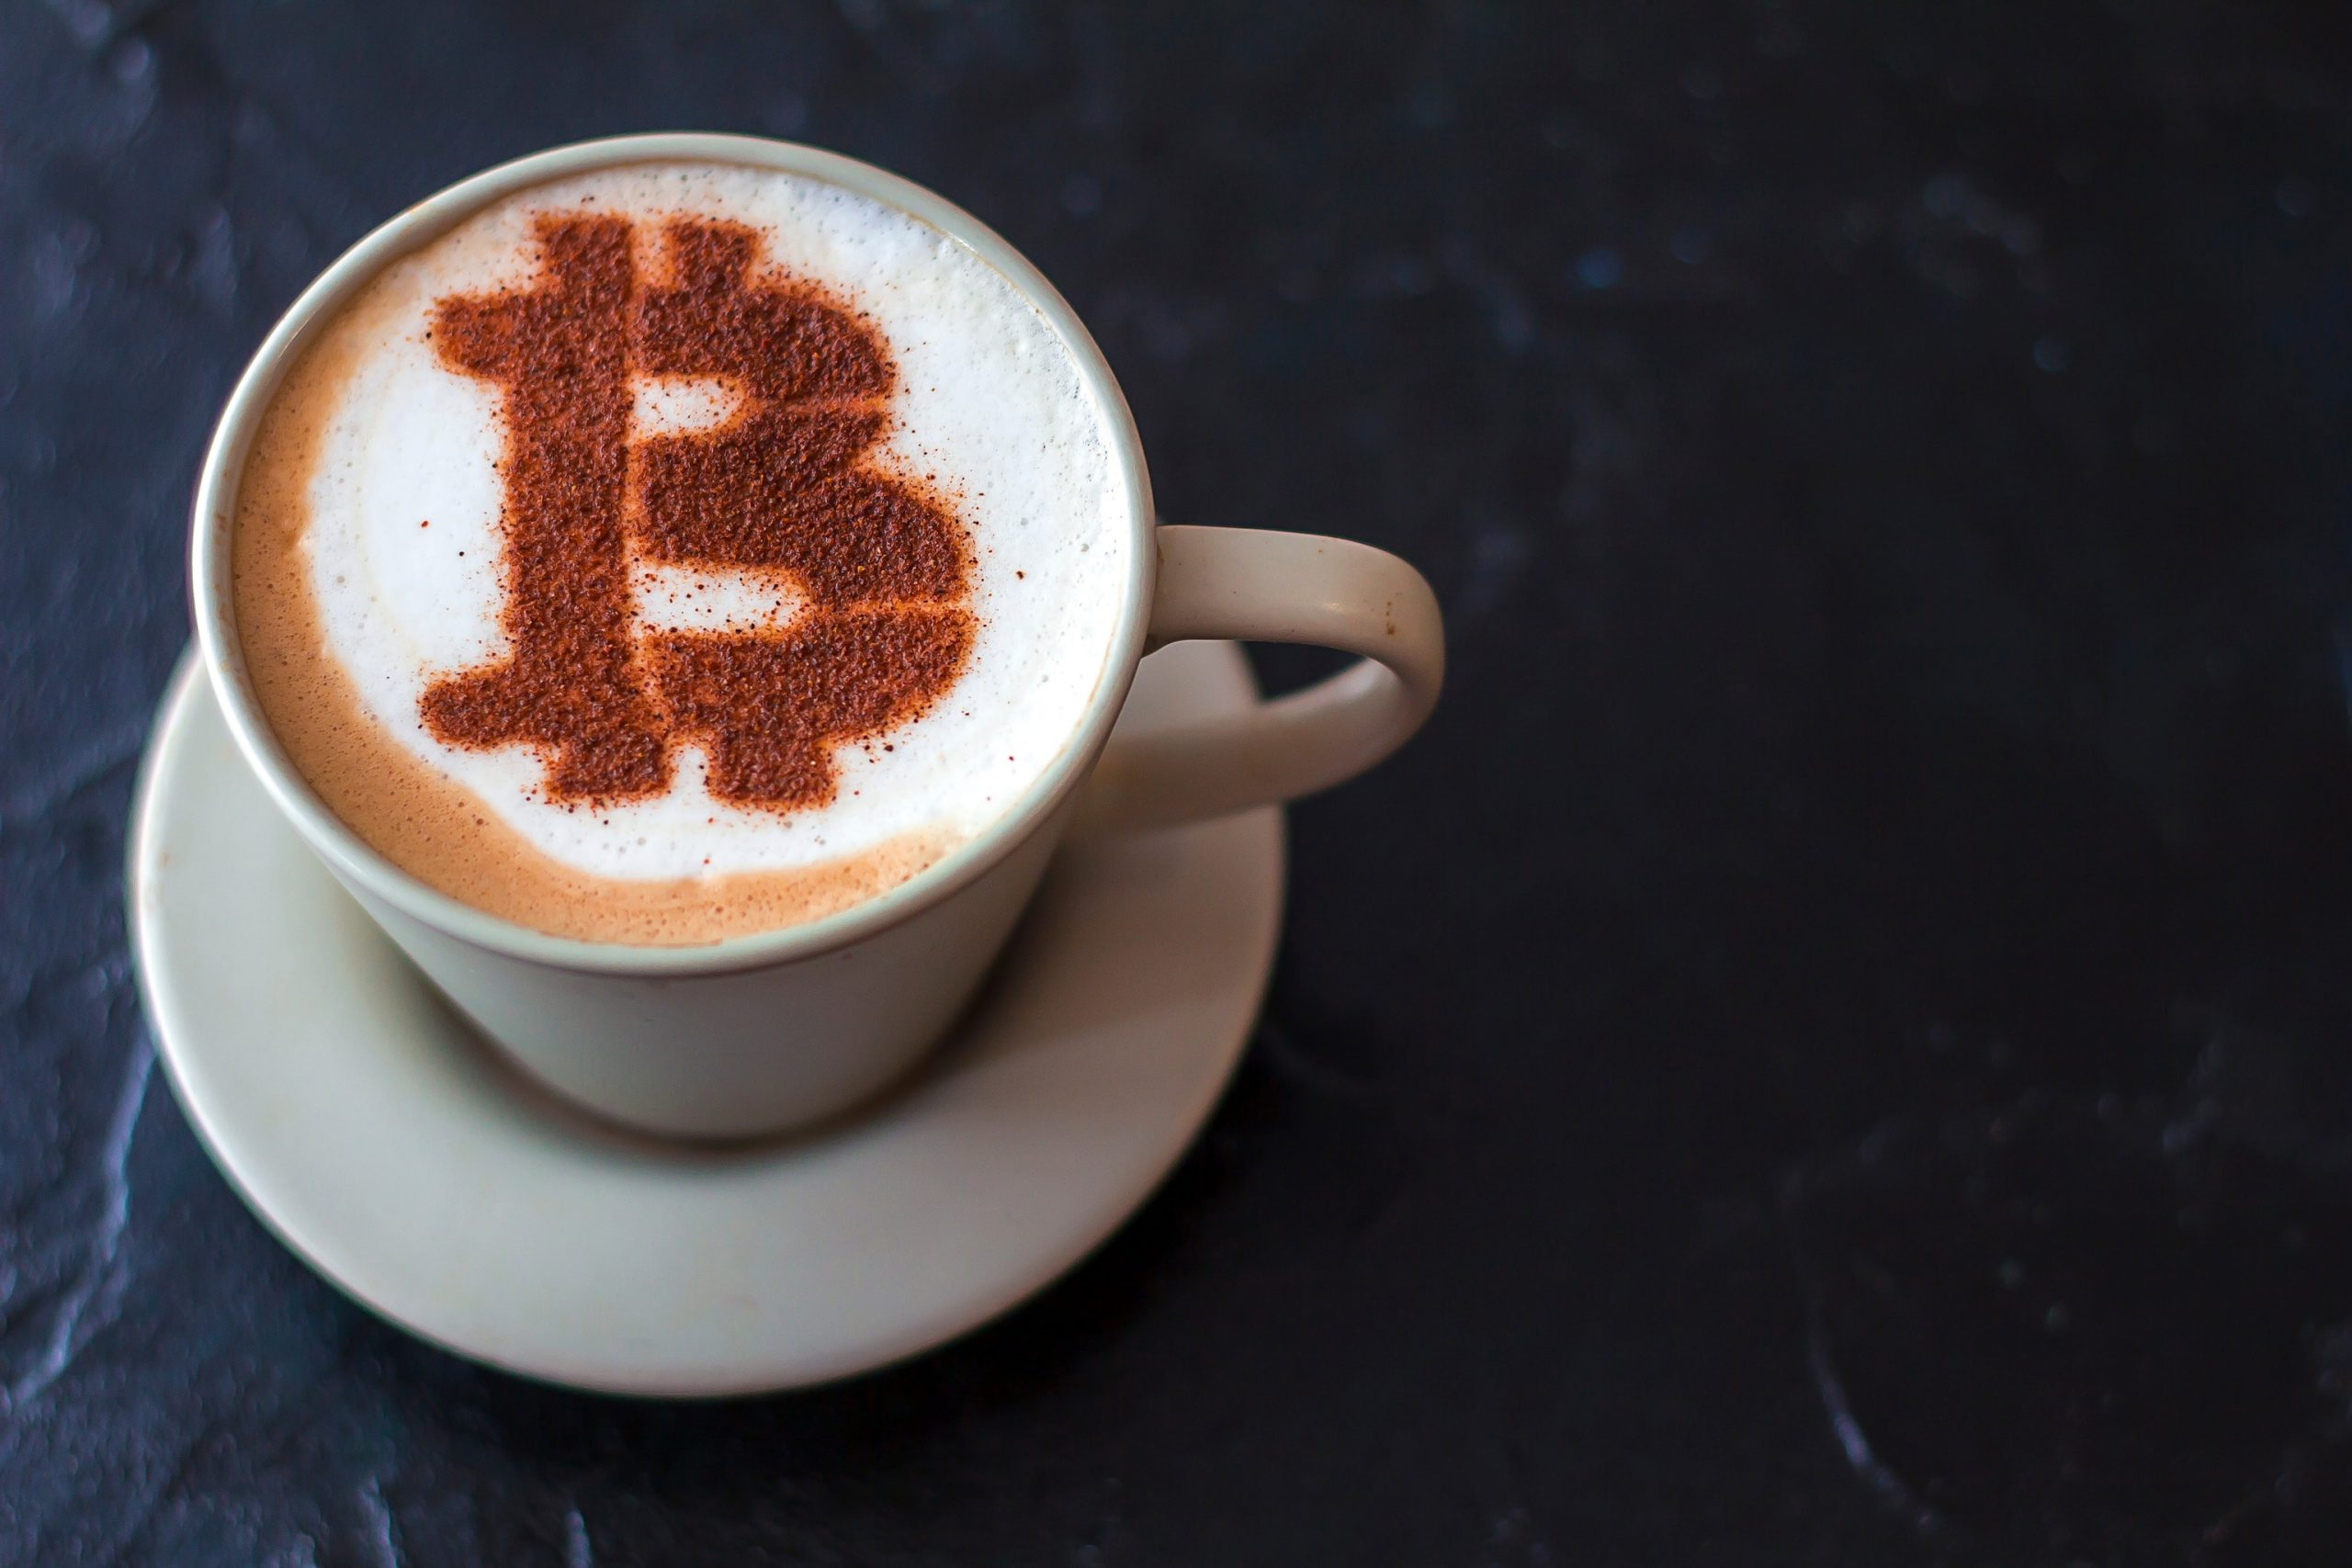 coffee cappuccino in a white cup with a symbol Bitcoin of cinnamon on milk foam